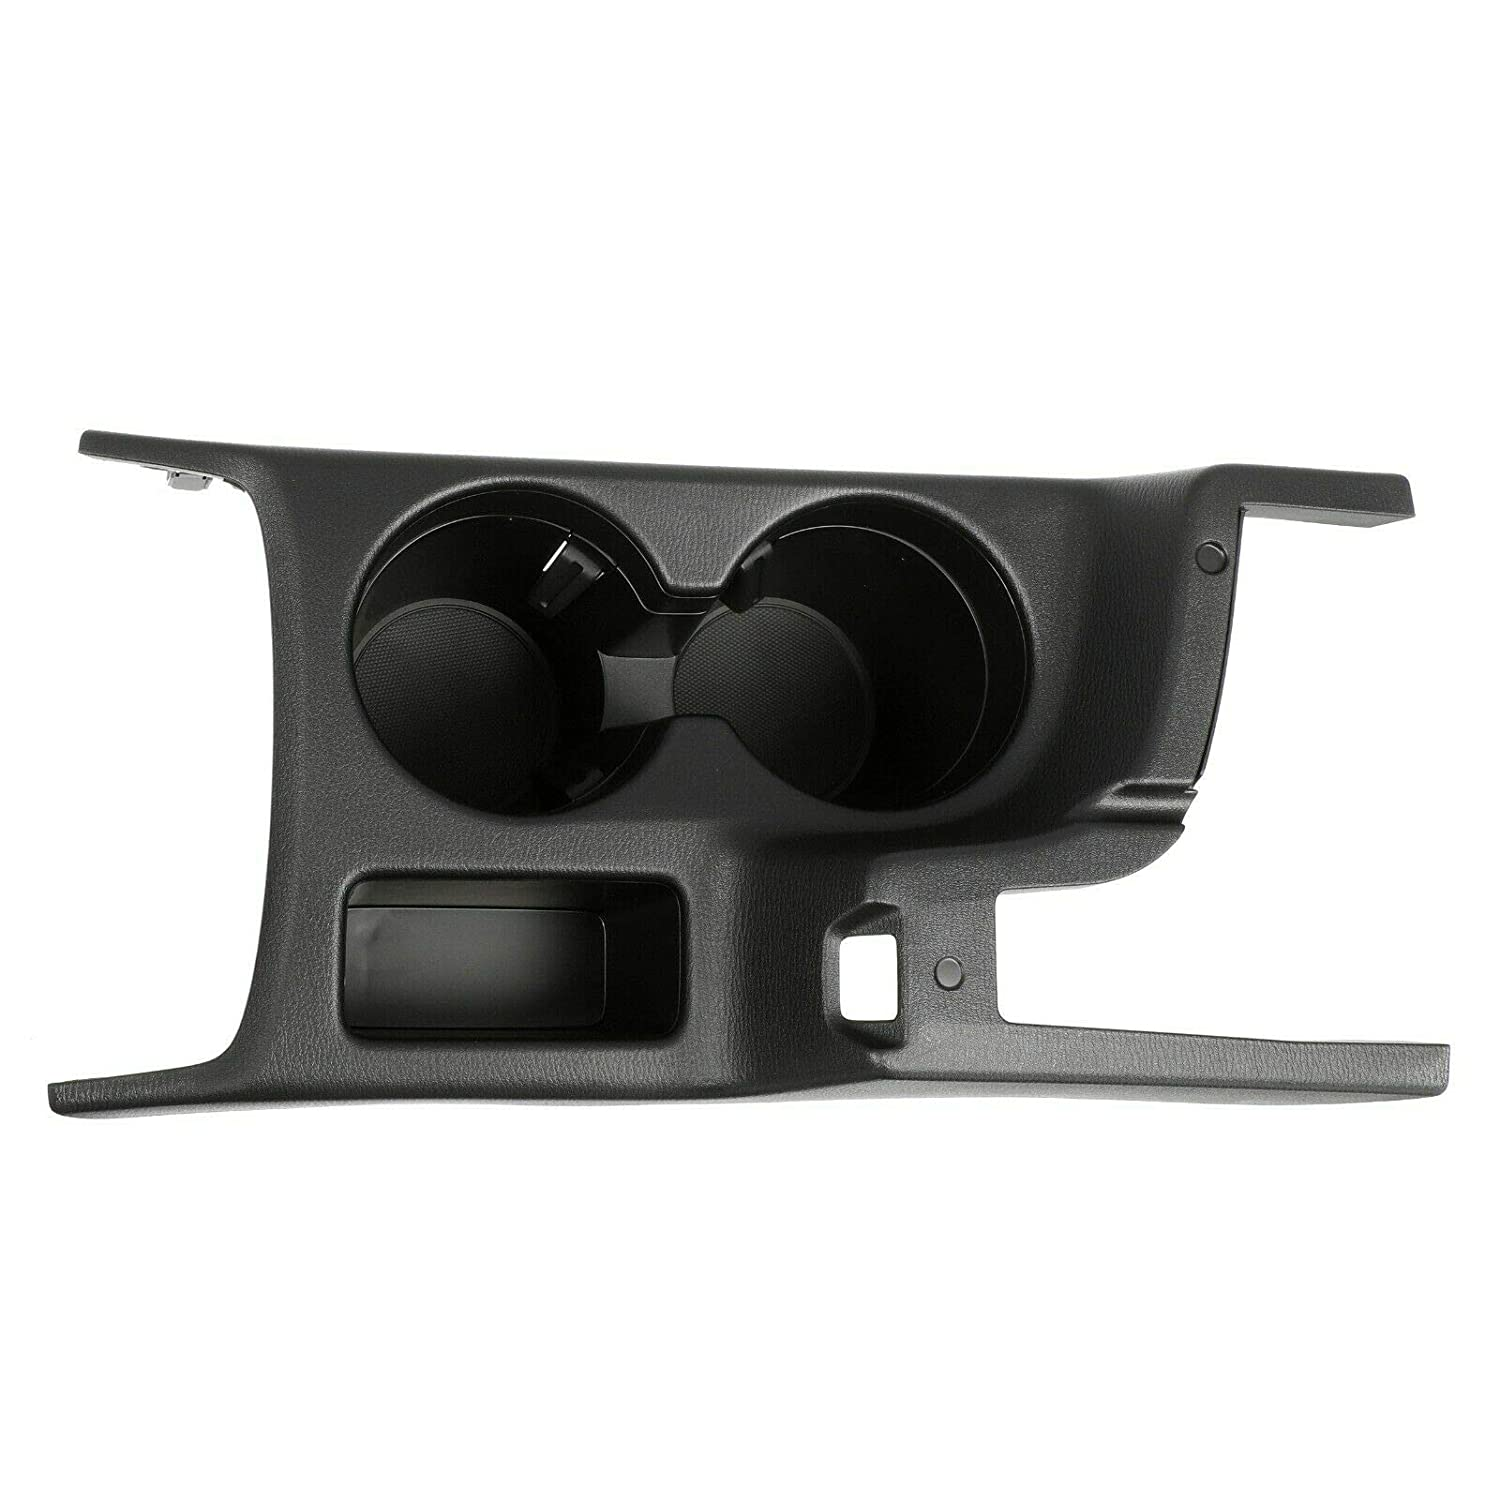 Cup Holder Topics on TV Case Console OEM CX-5 Mazda 2016 KA0G-64-630A-02 New Sale SALE% OFF